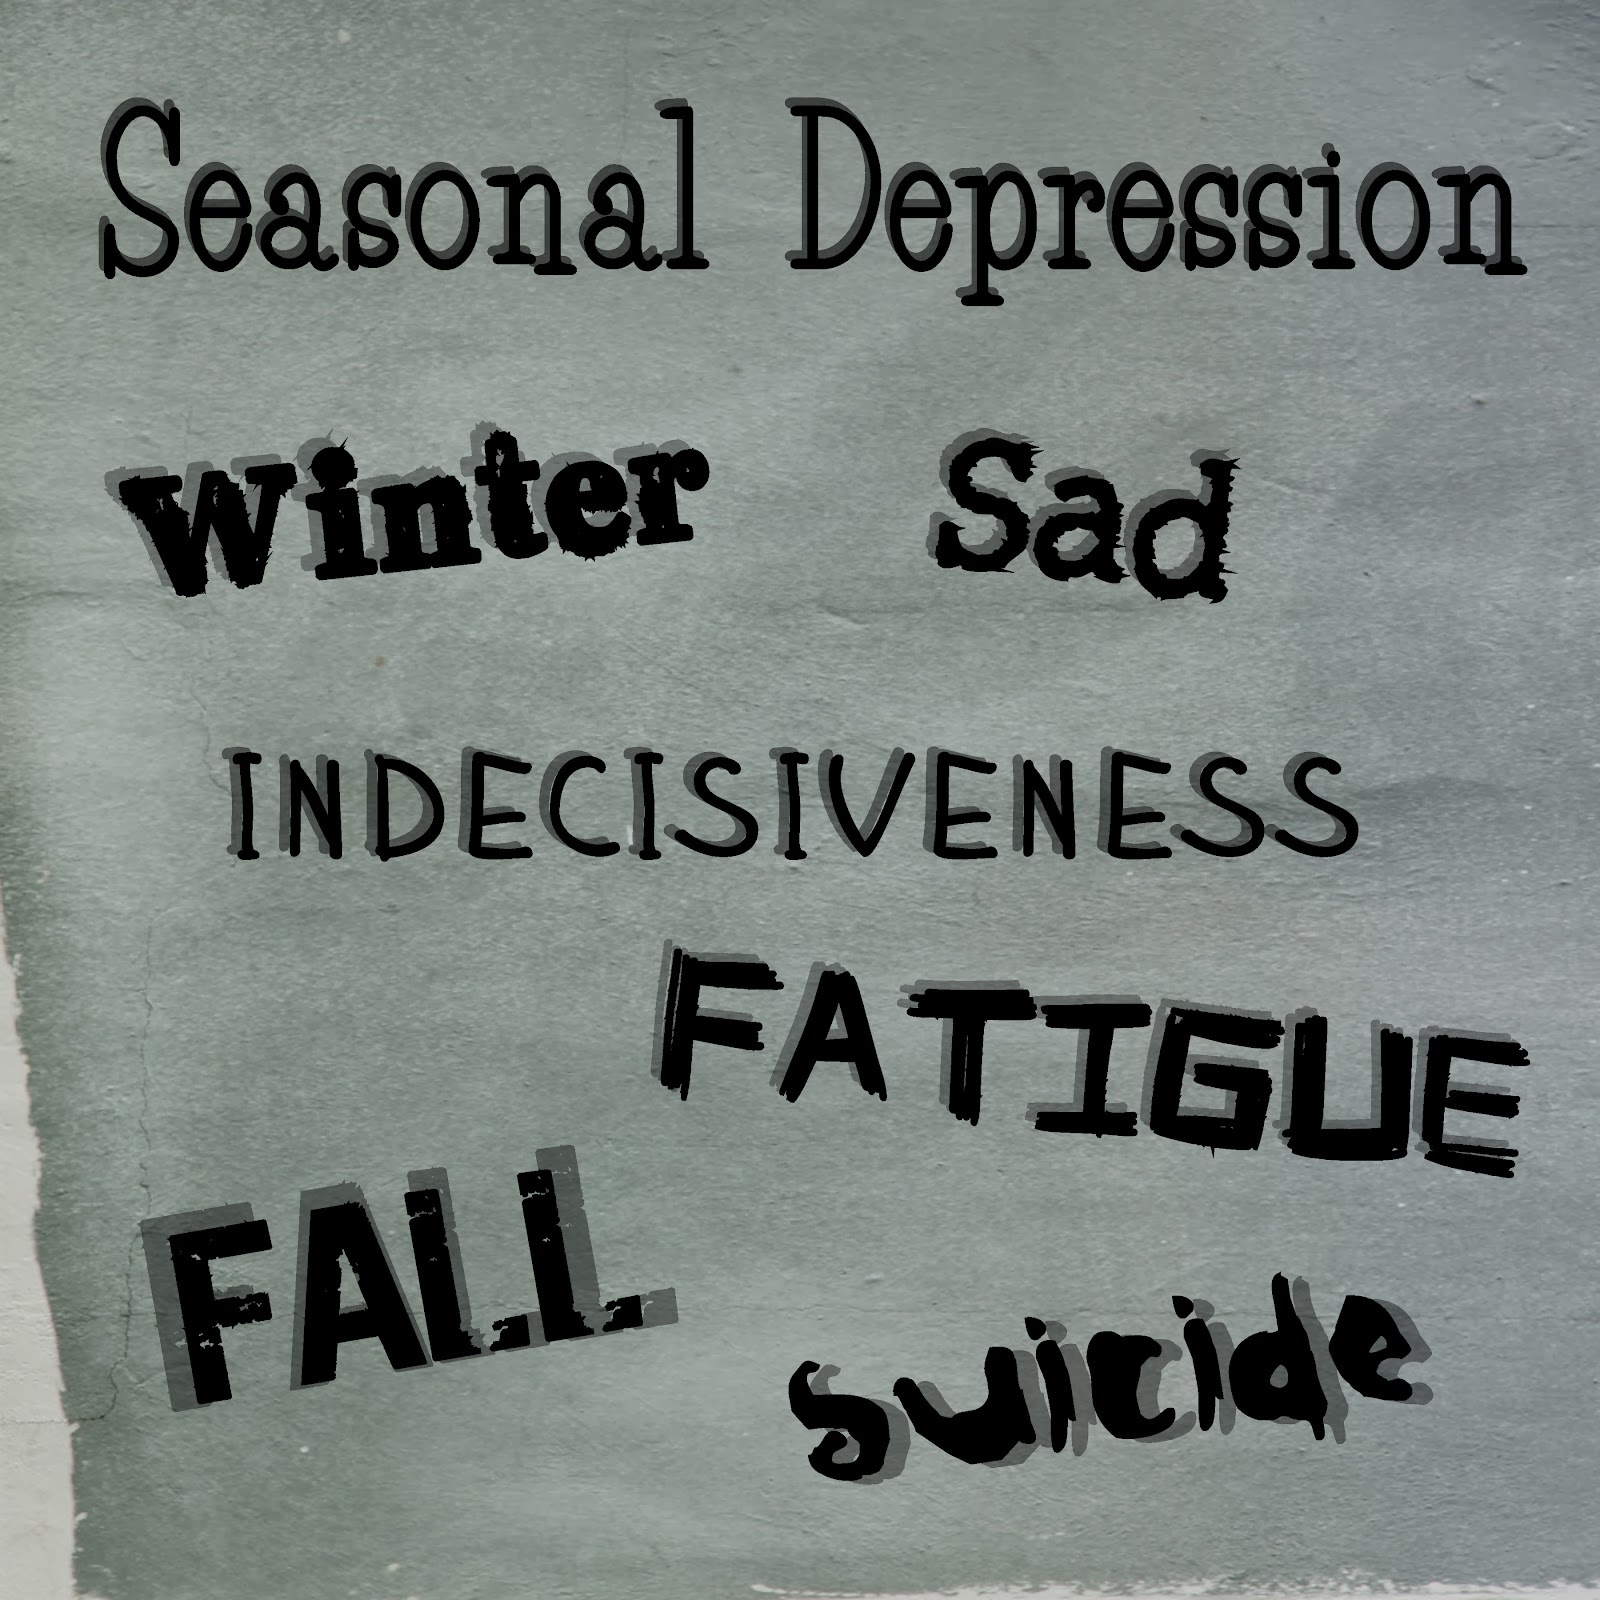 Depression Quotes: Skittles In The Pit: Seasonal Affective Disorder (SAD